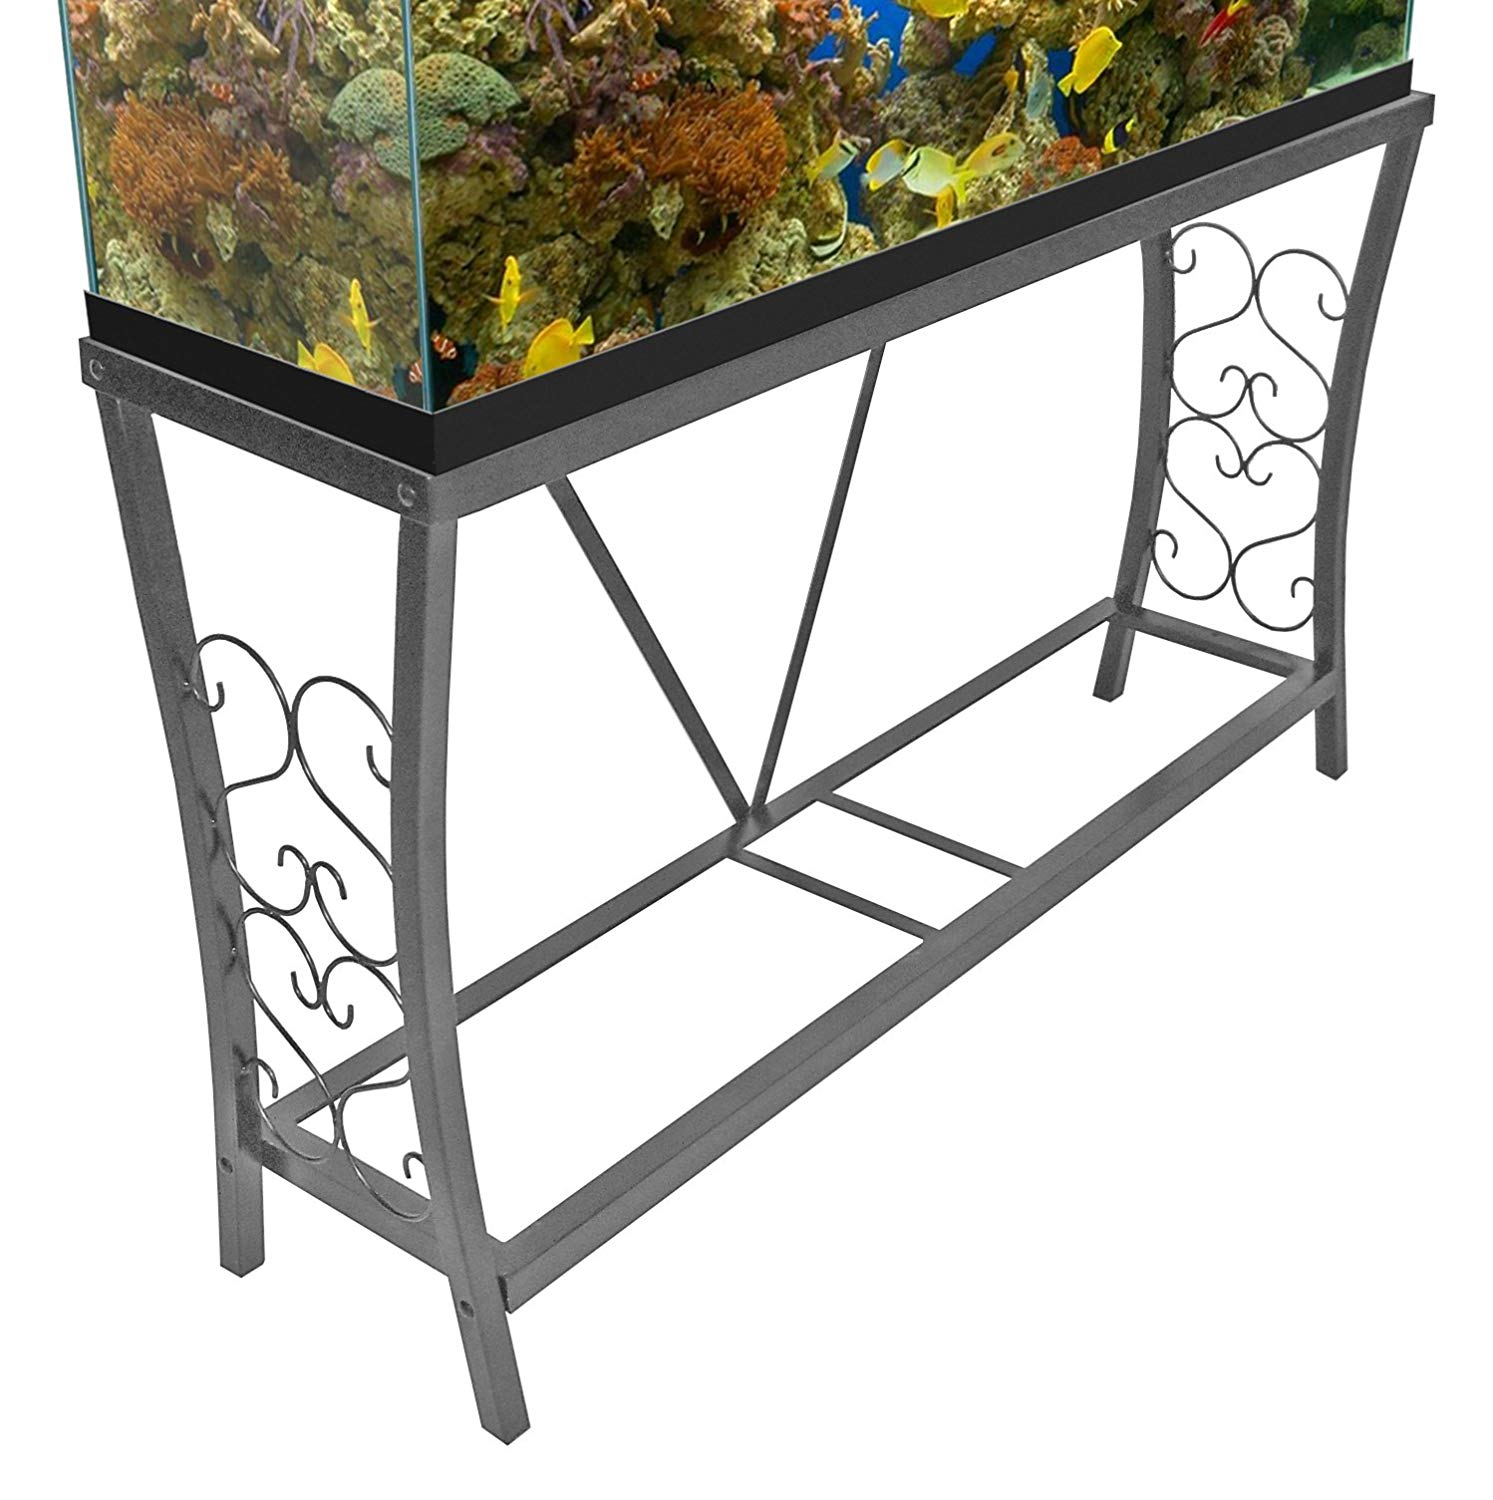 top 10 best metal fish tank stand of 2018 review 10 Gallon Fish Tank Stand Metal